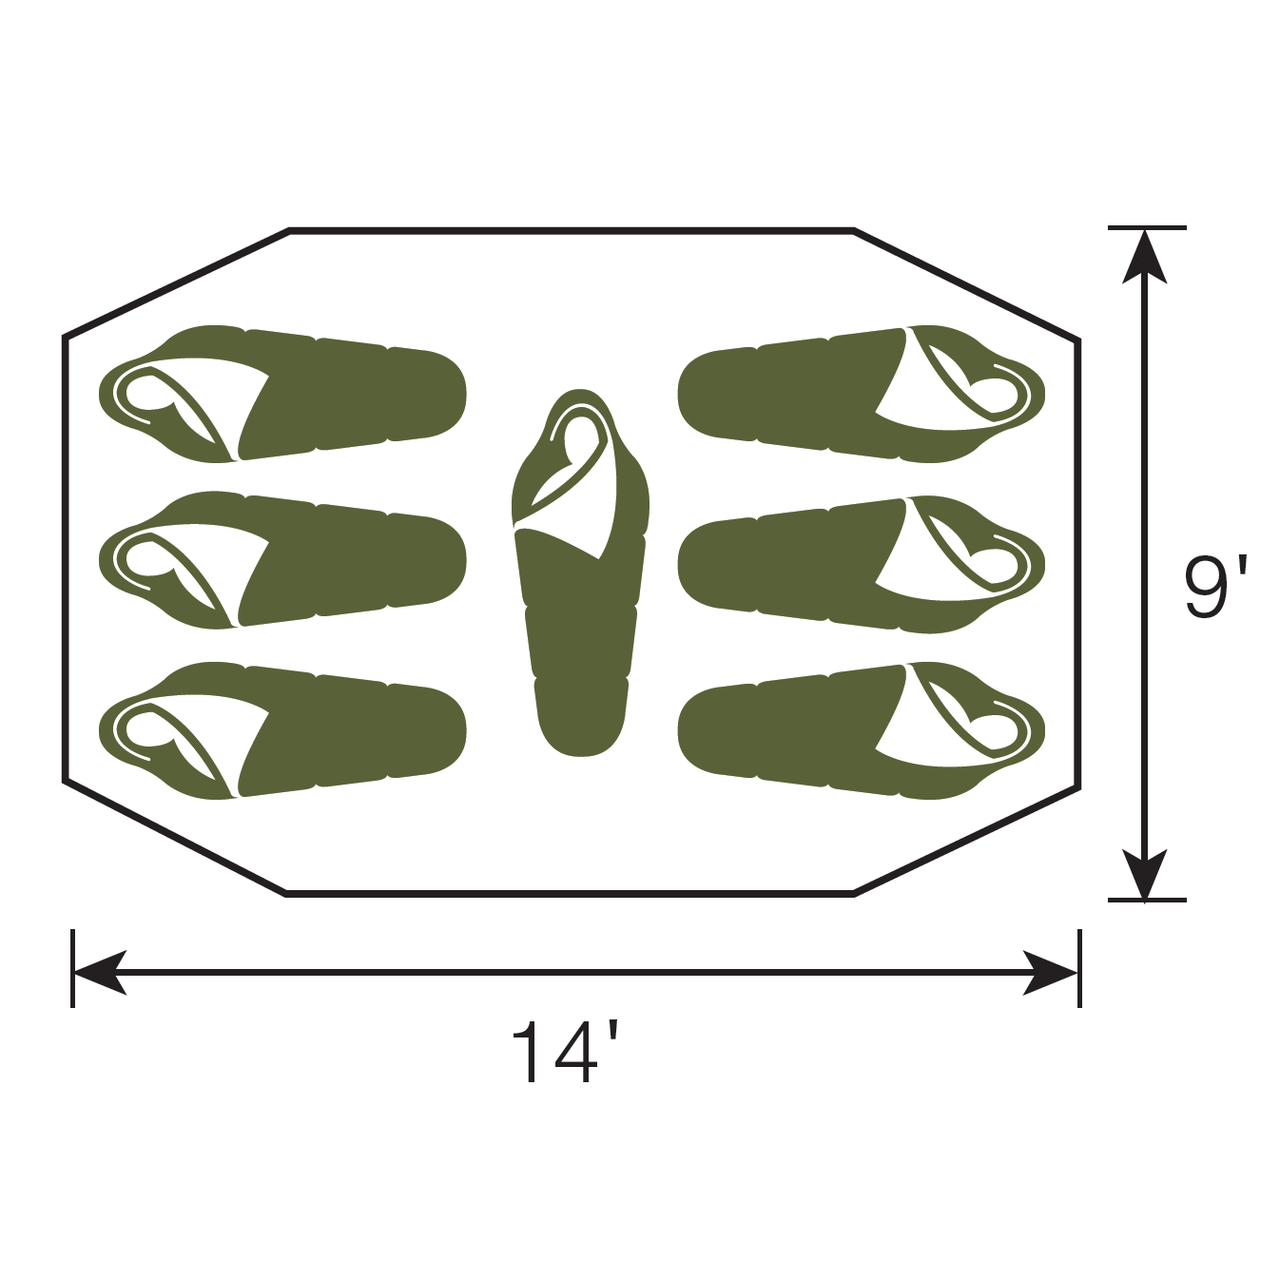 Diagram showing the dimensions of the Wenzel Blue Ridge 7 Tent floor plan with three people sleeping in the left and right room of the tent with one person sleeping in the middle room